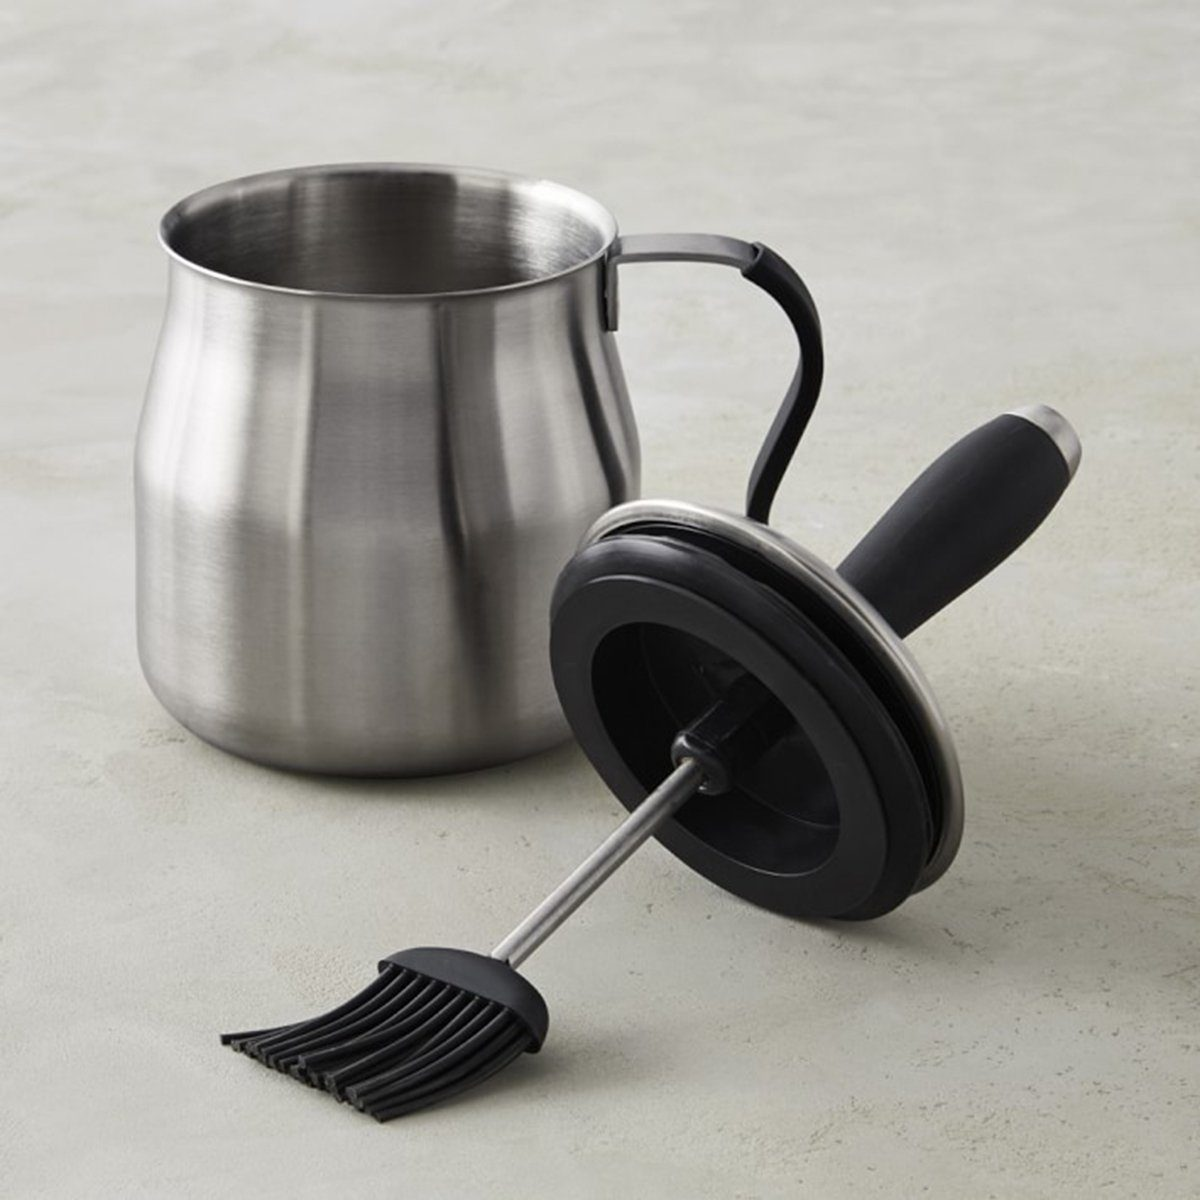 Stainless-Steel Basting Pot with Silicone Brush and Handle